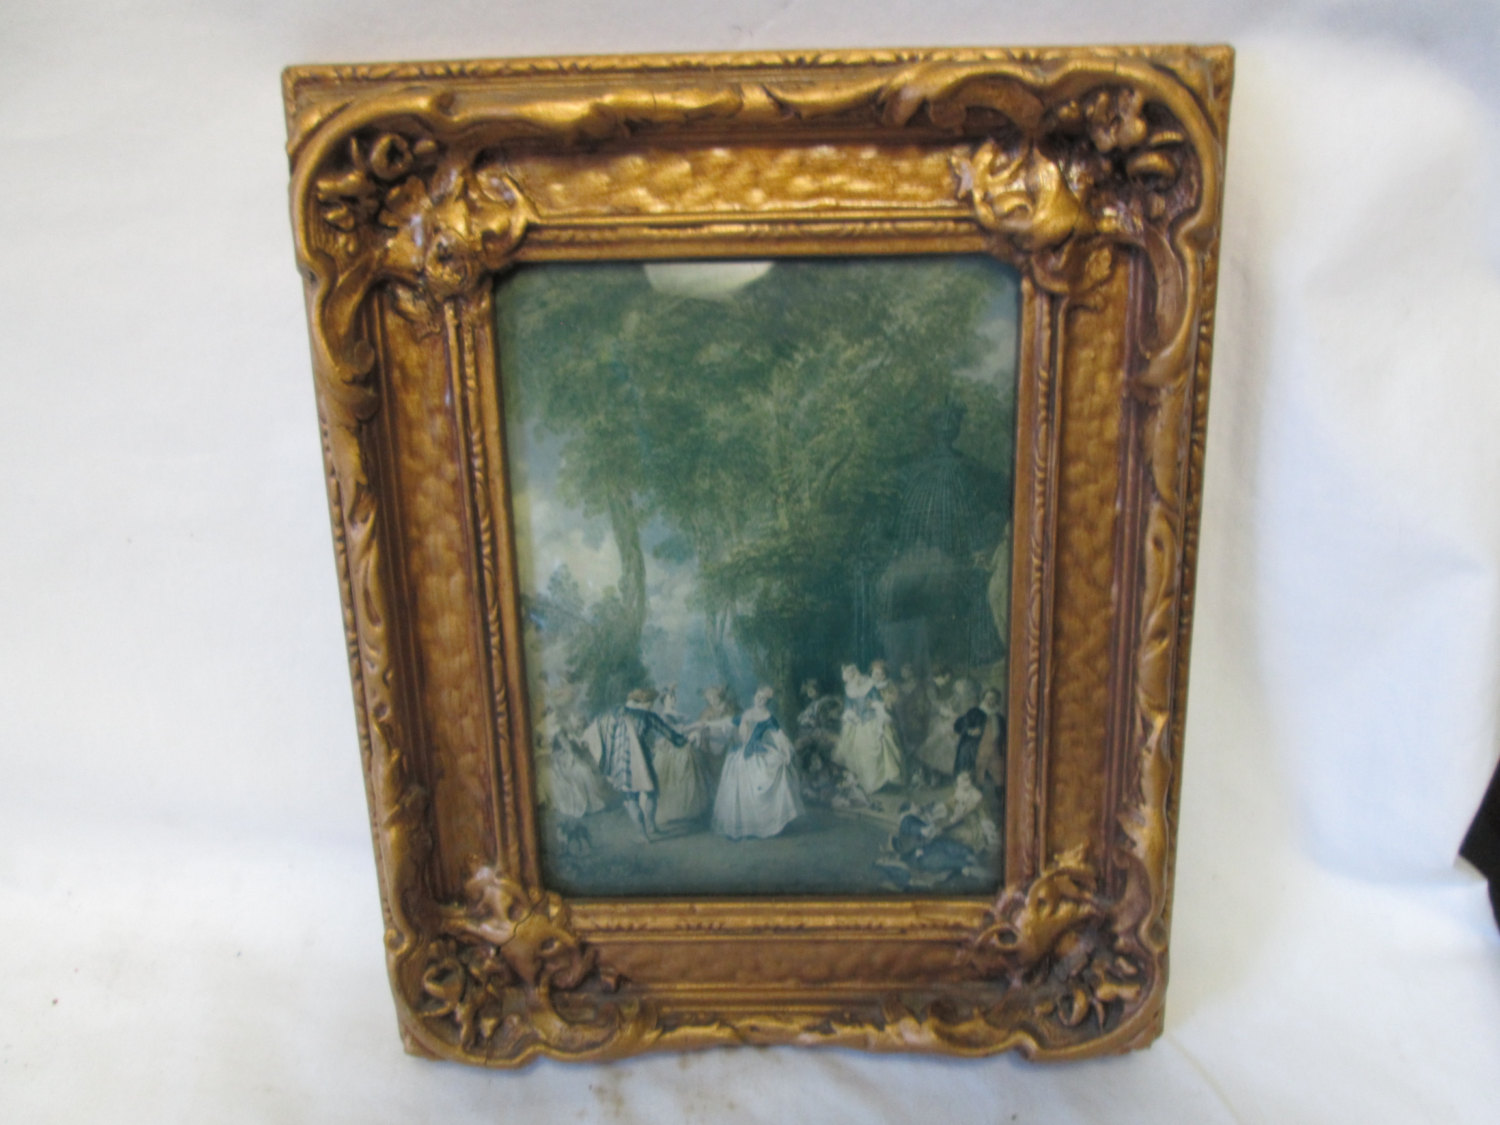 Vintage Victorian Scene Wall Art Convex Glass Ornate Gold Wooden Frame Dancing Women And Men Party Music